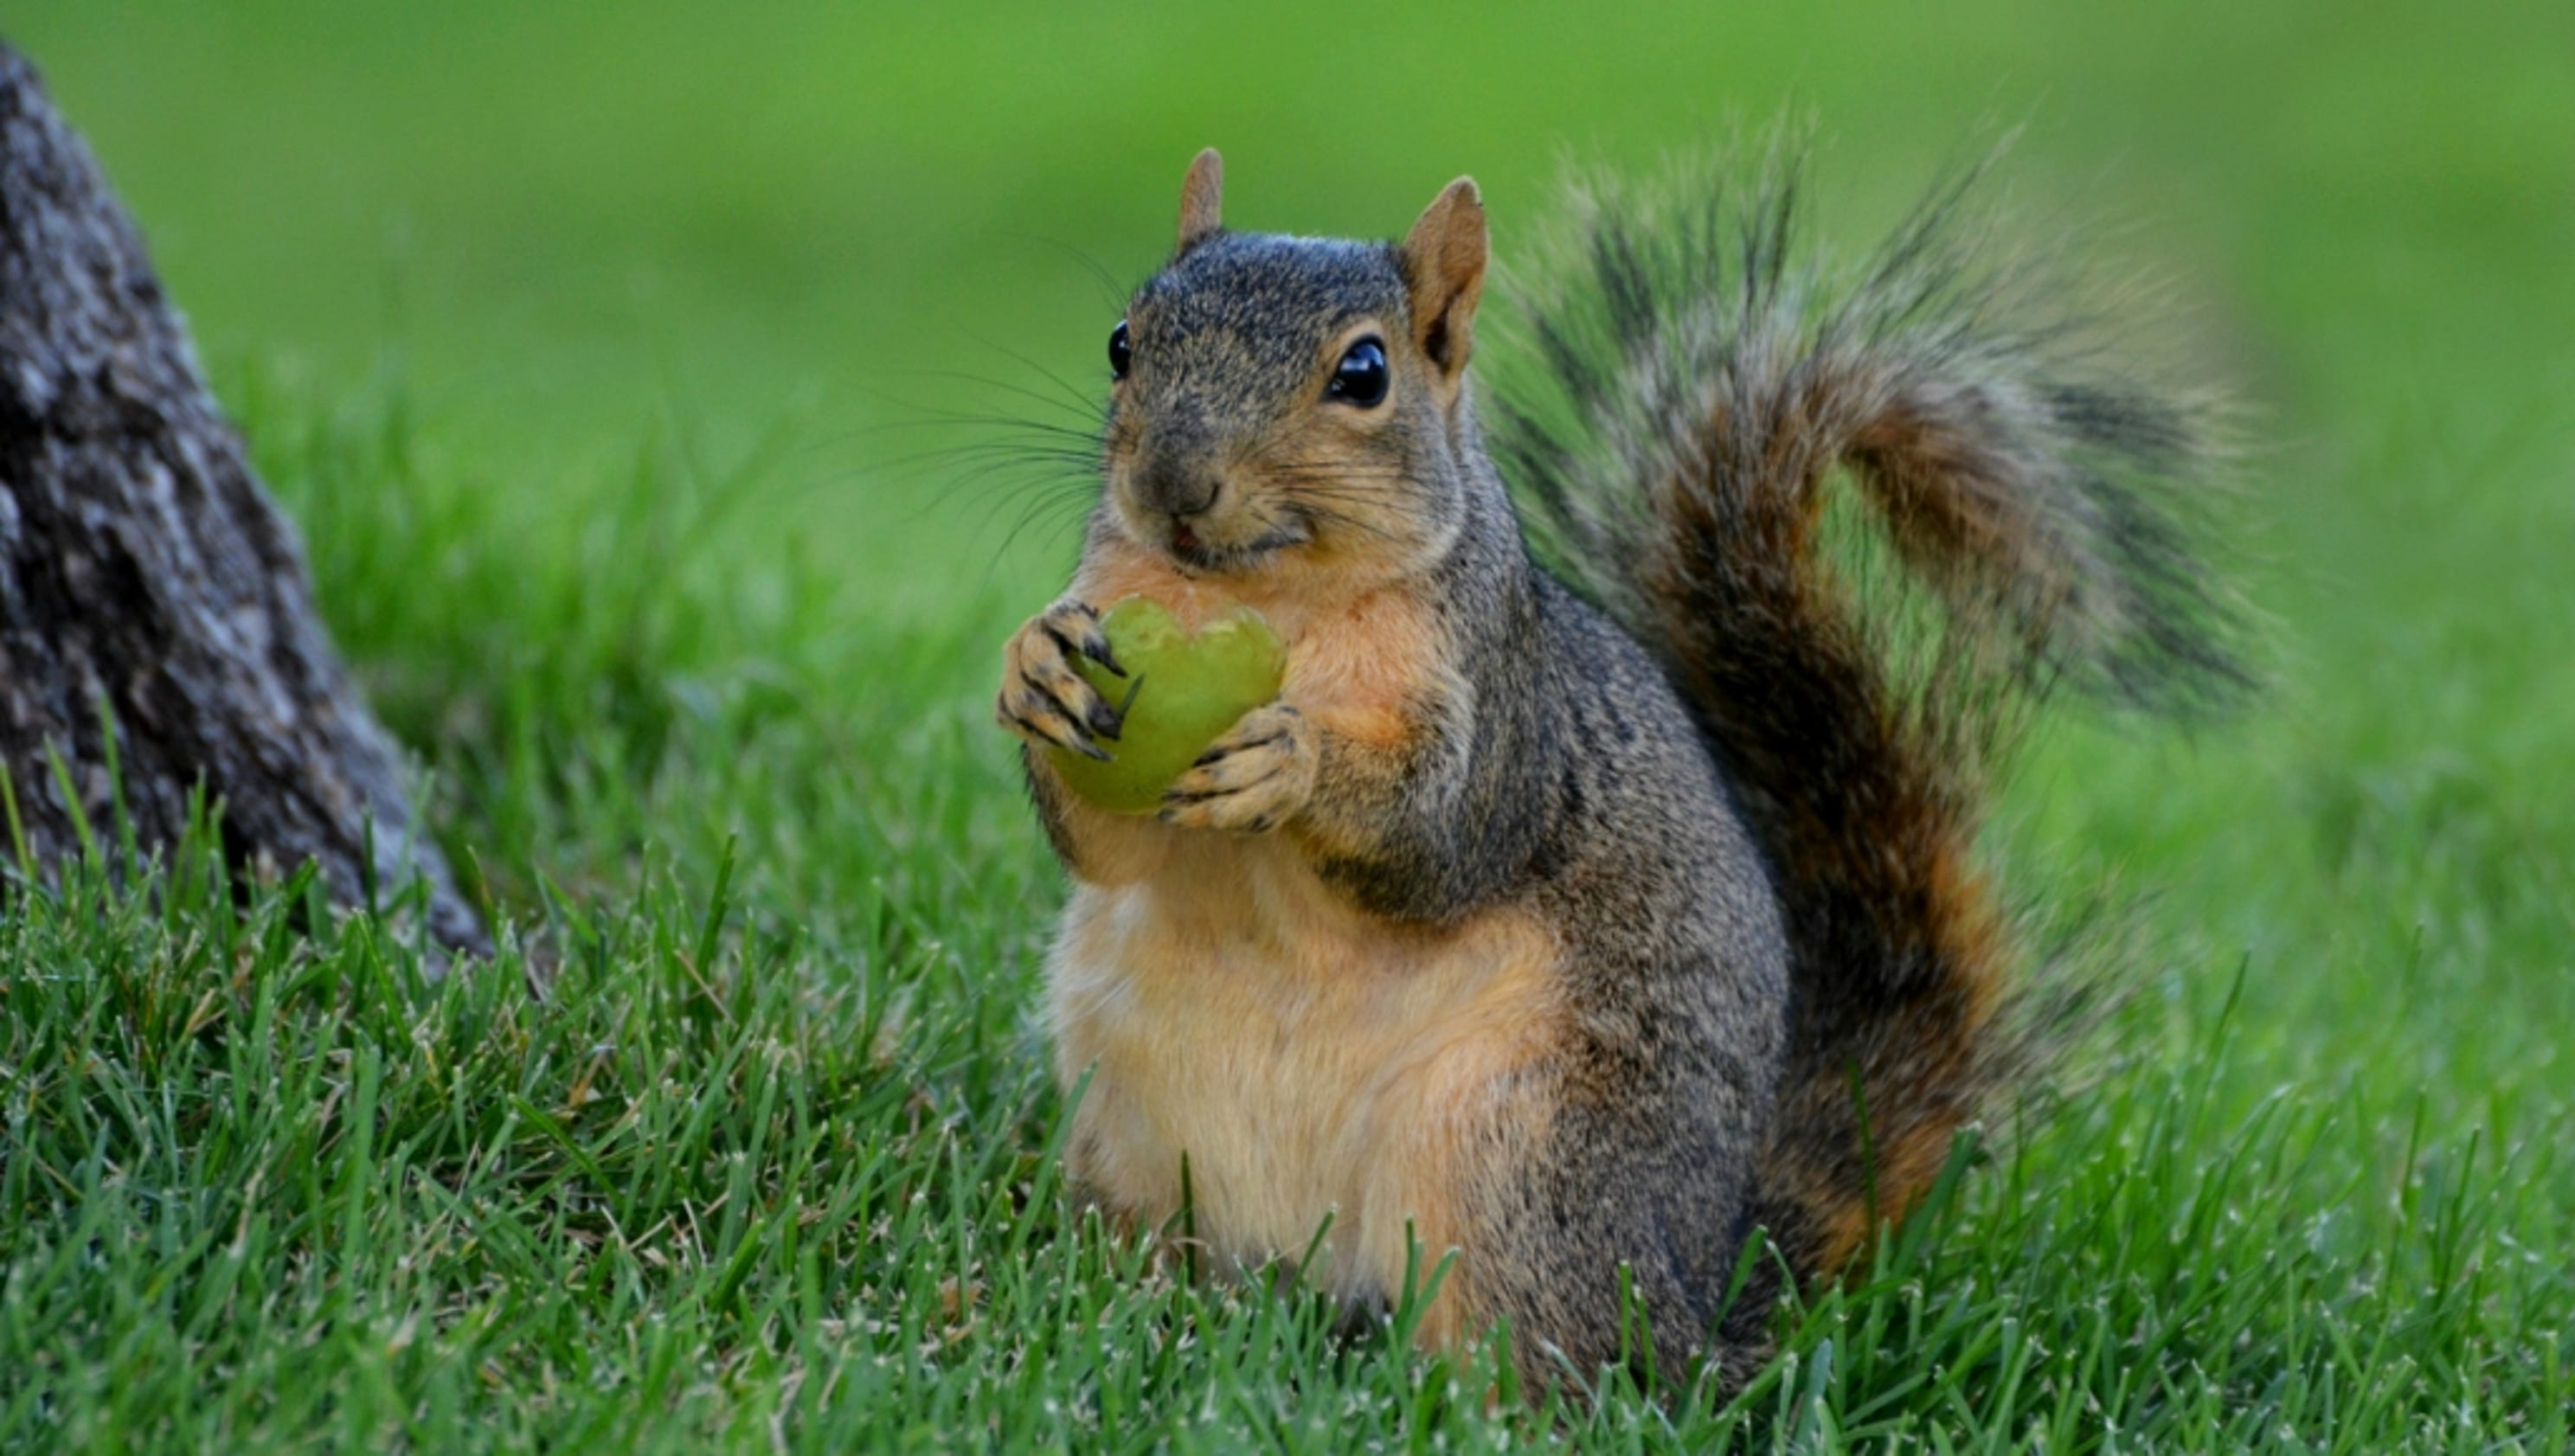 feeding squirrels now legal in loveland - Pictures Of Squirrels